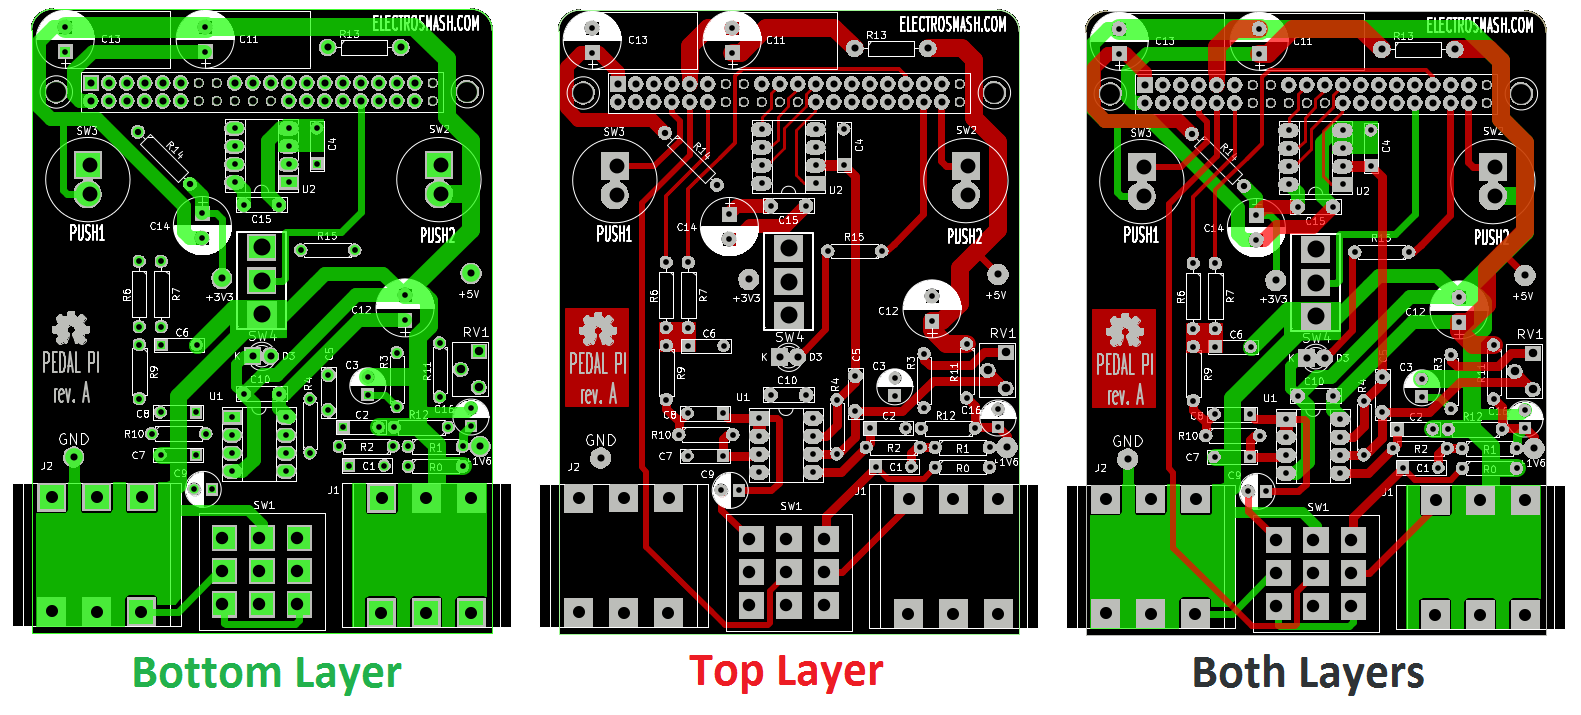 Pedal-Pi-Layout1.png